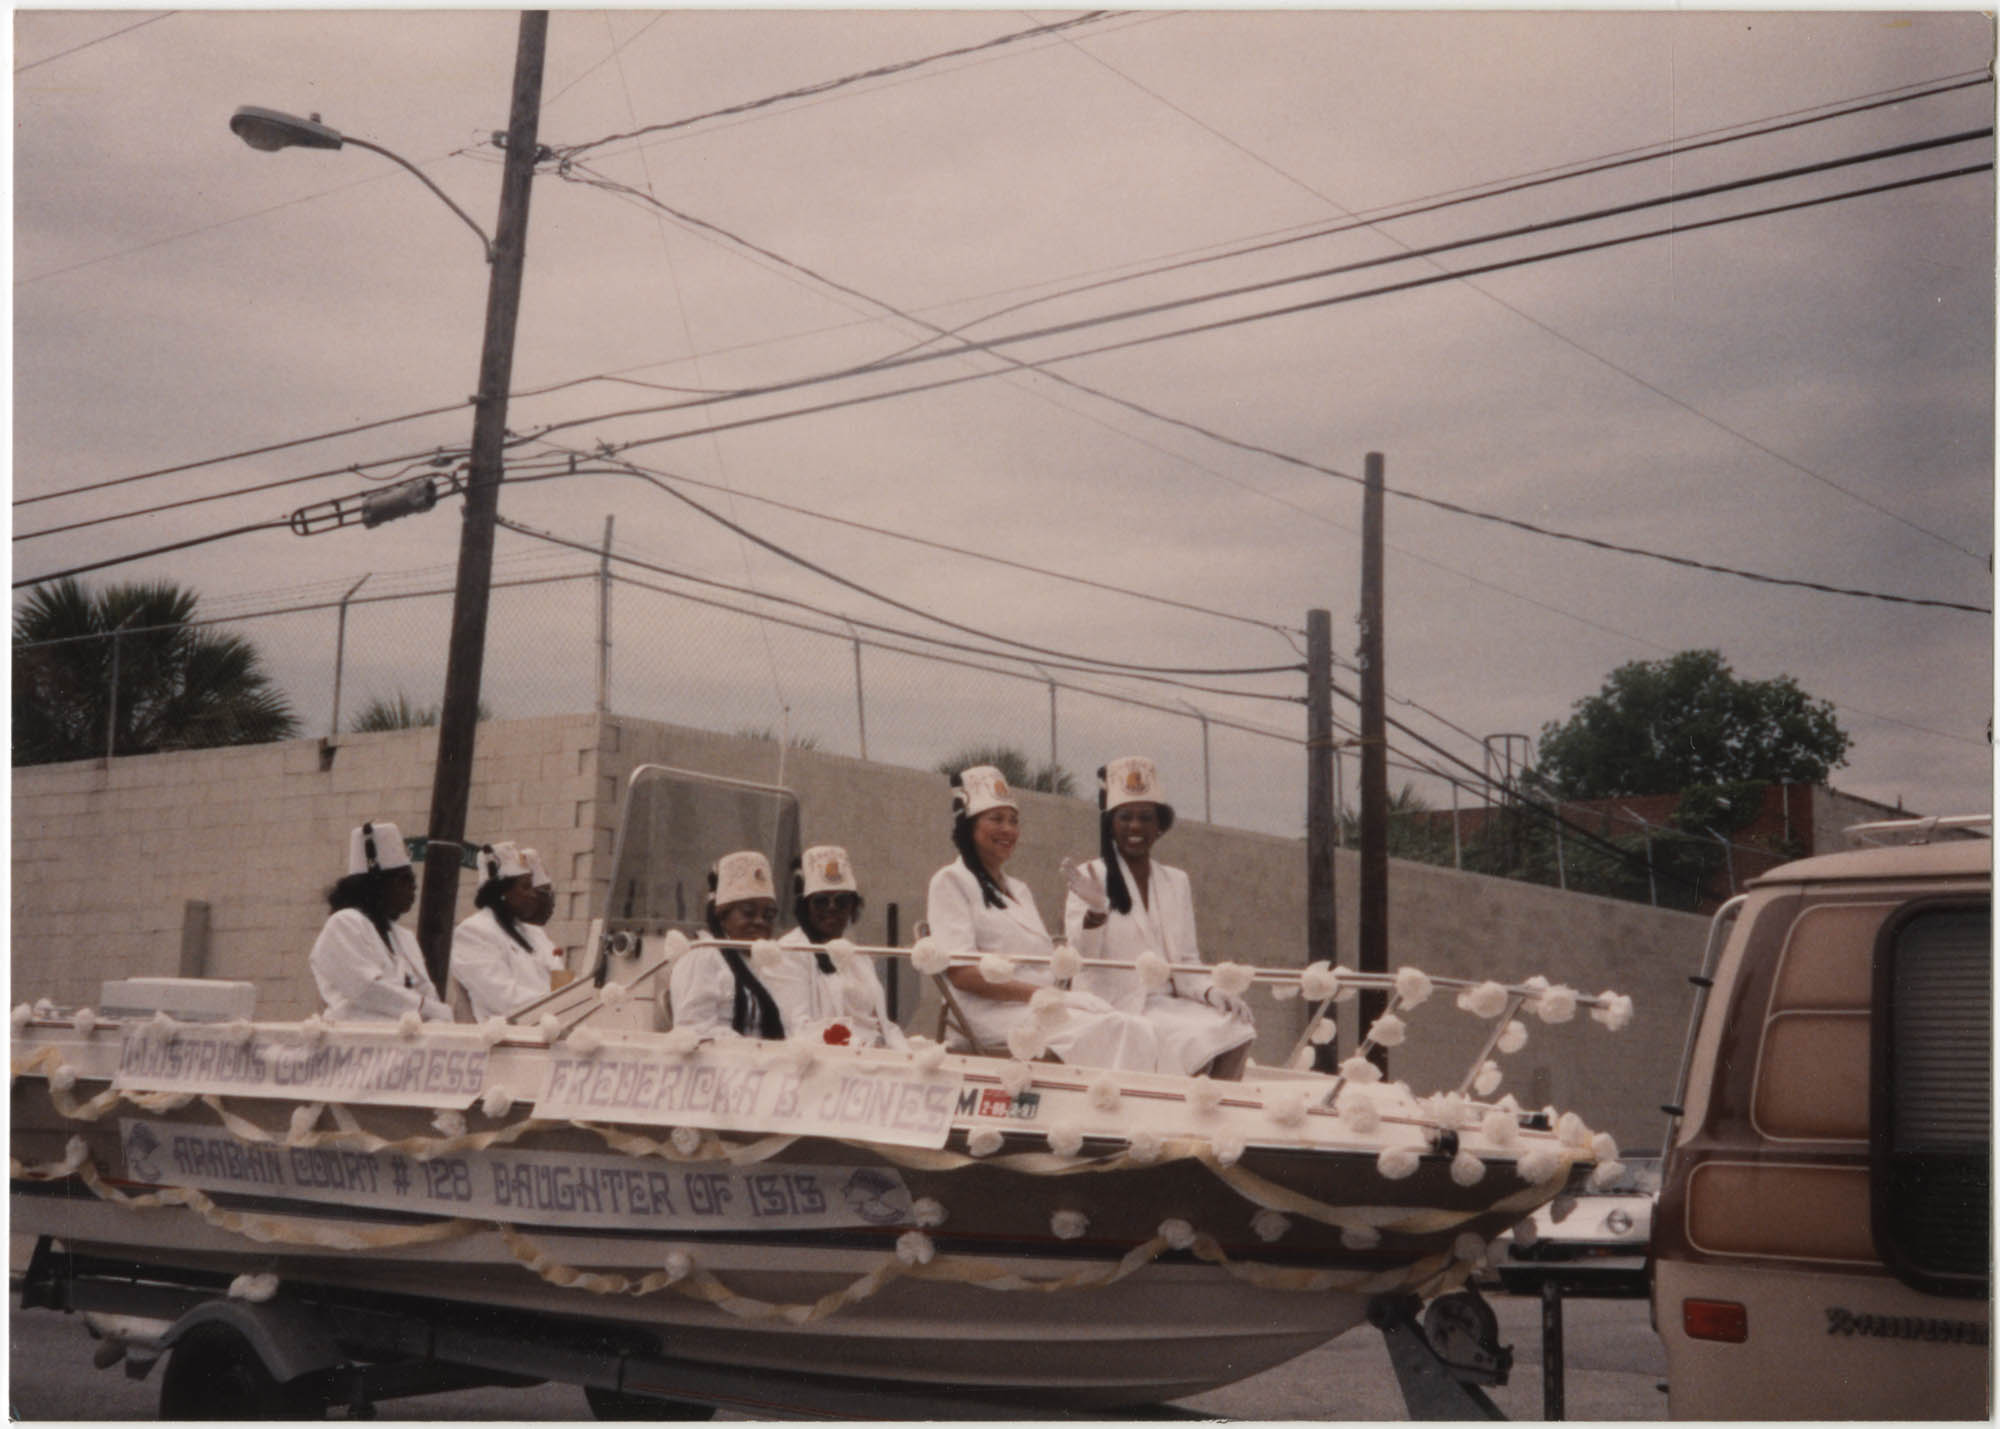 Photograph of a Parade Float